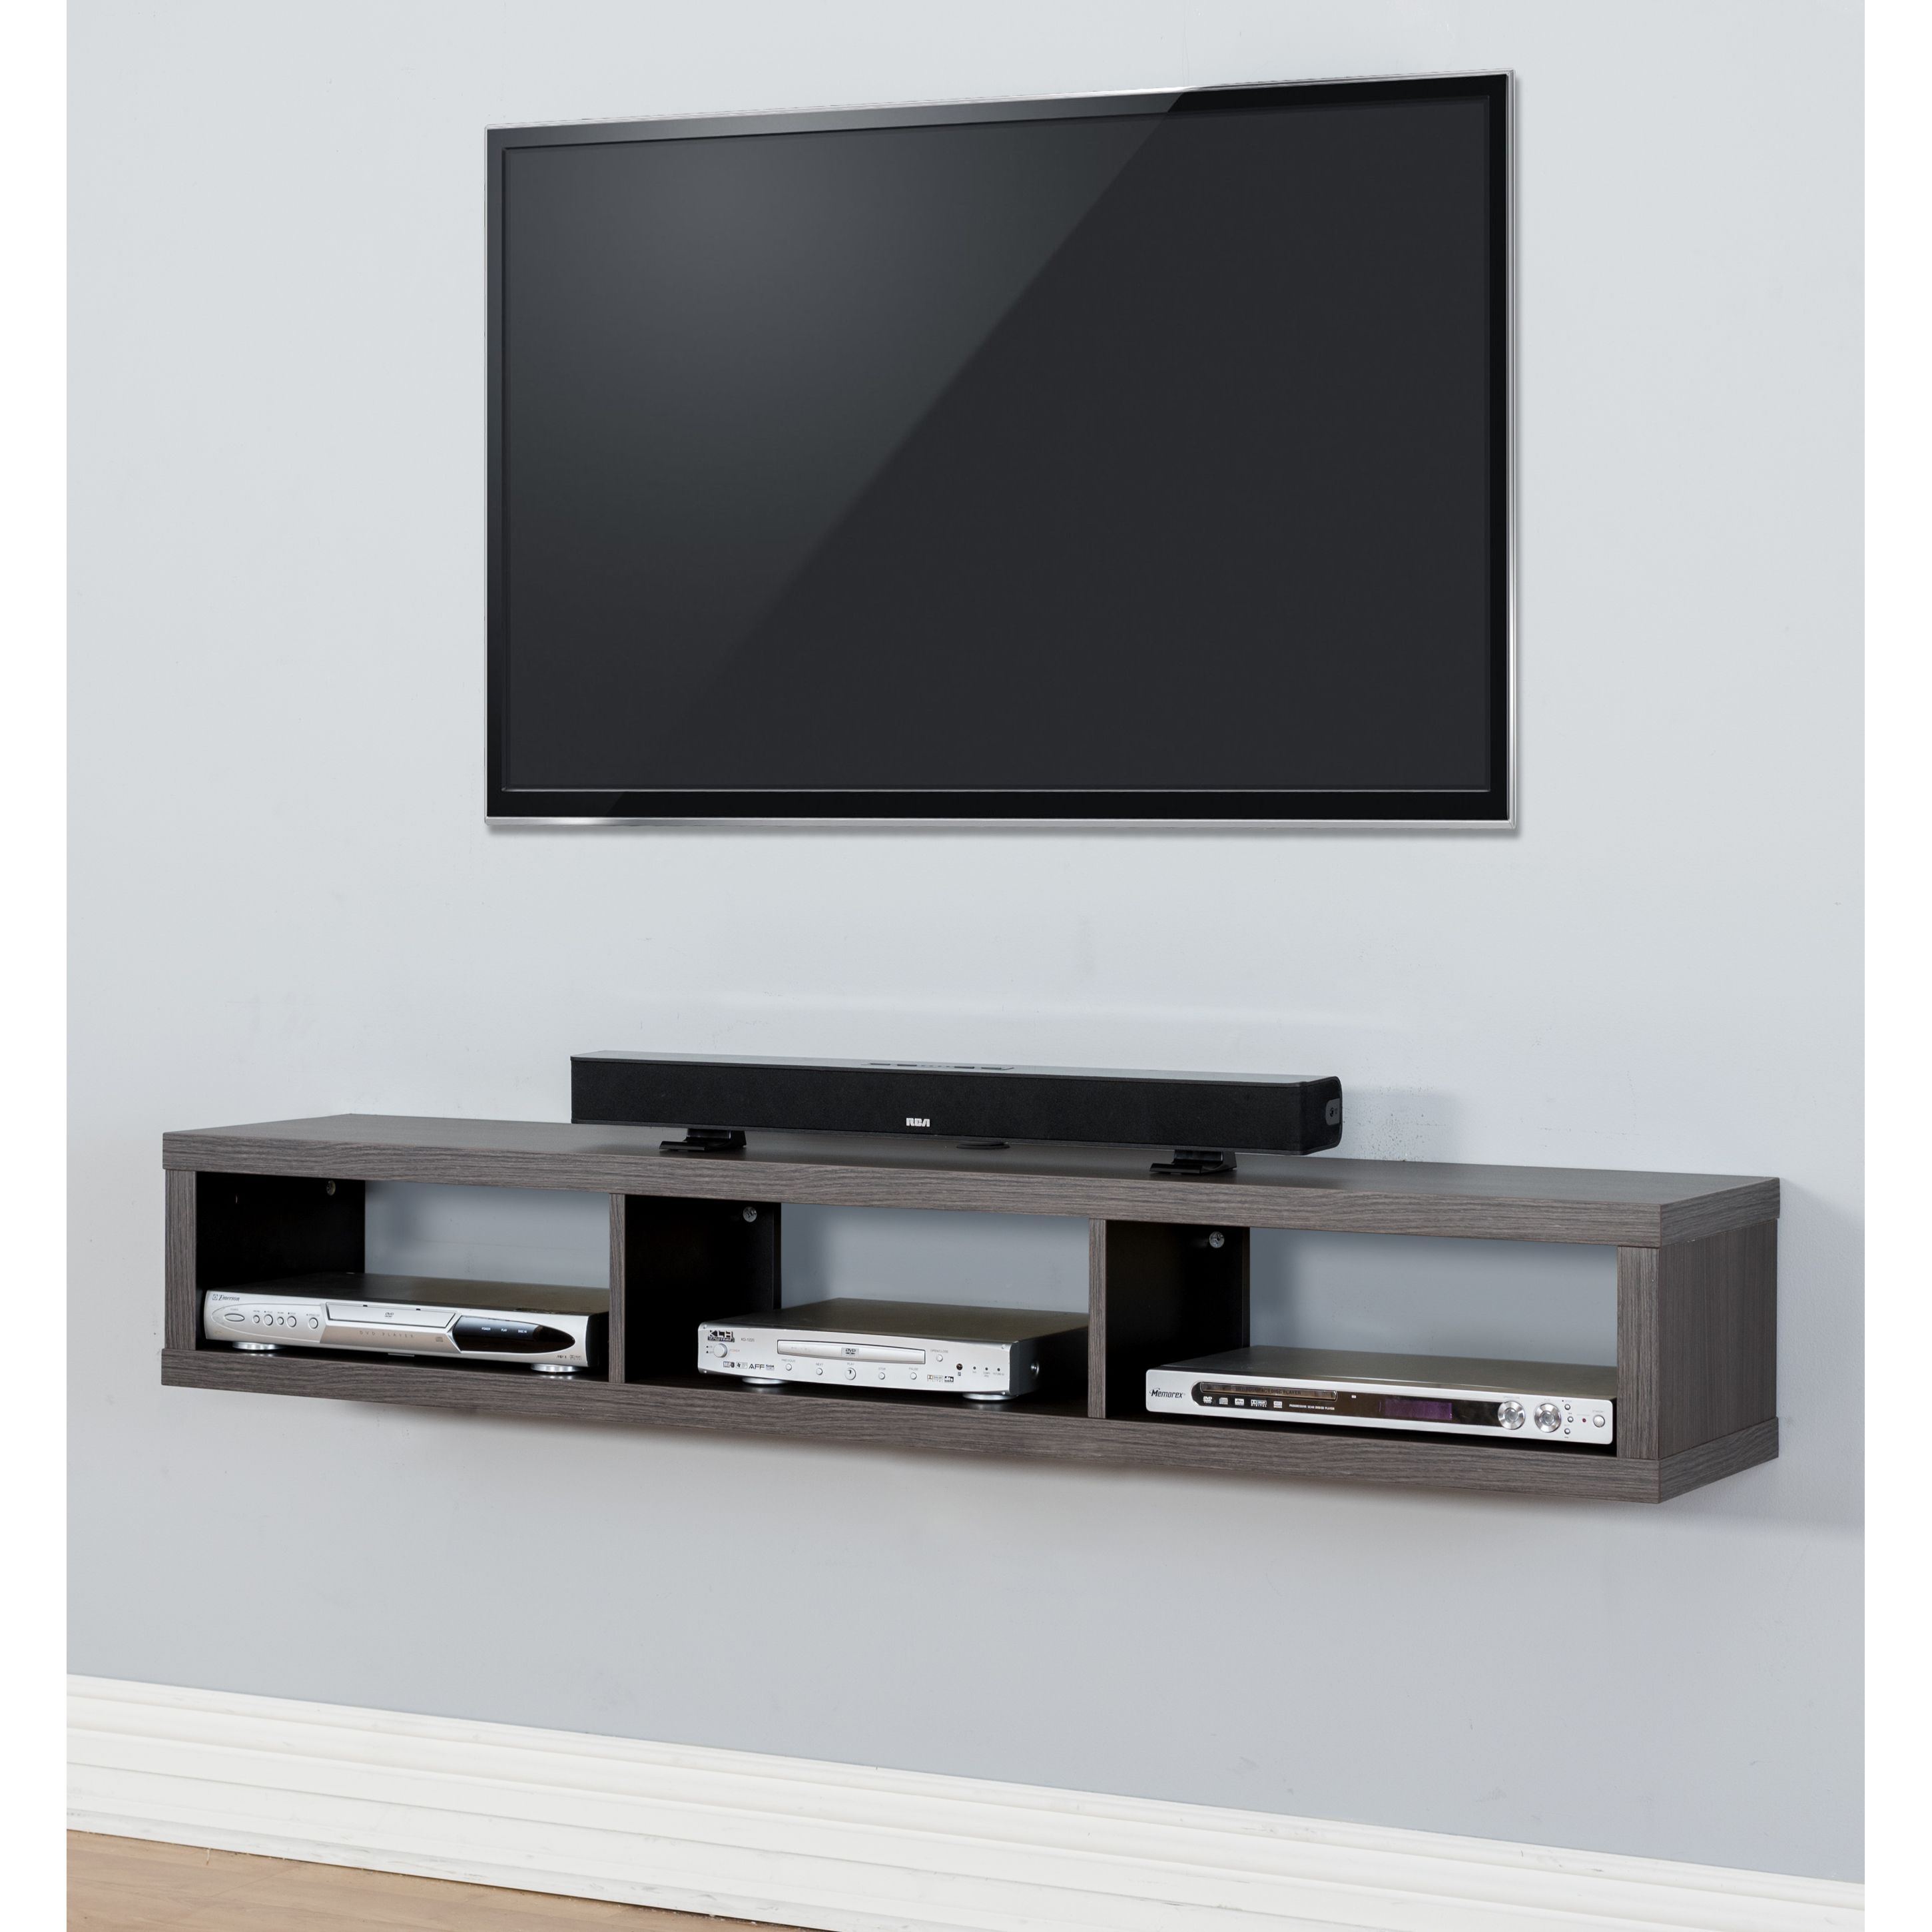 thin 60 inch wall mount tv console decor wall mounted tv rh pinterest com wall mount tv furniture wall mounted tv shelves uk